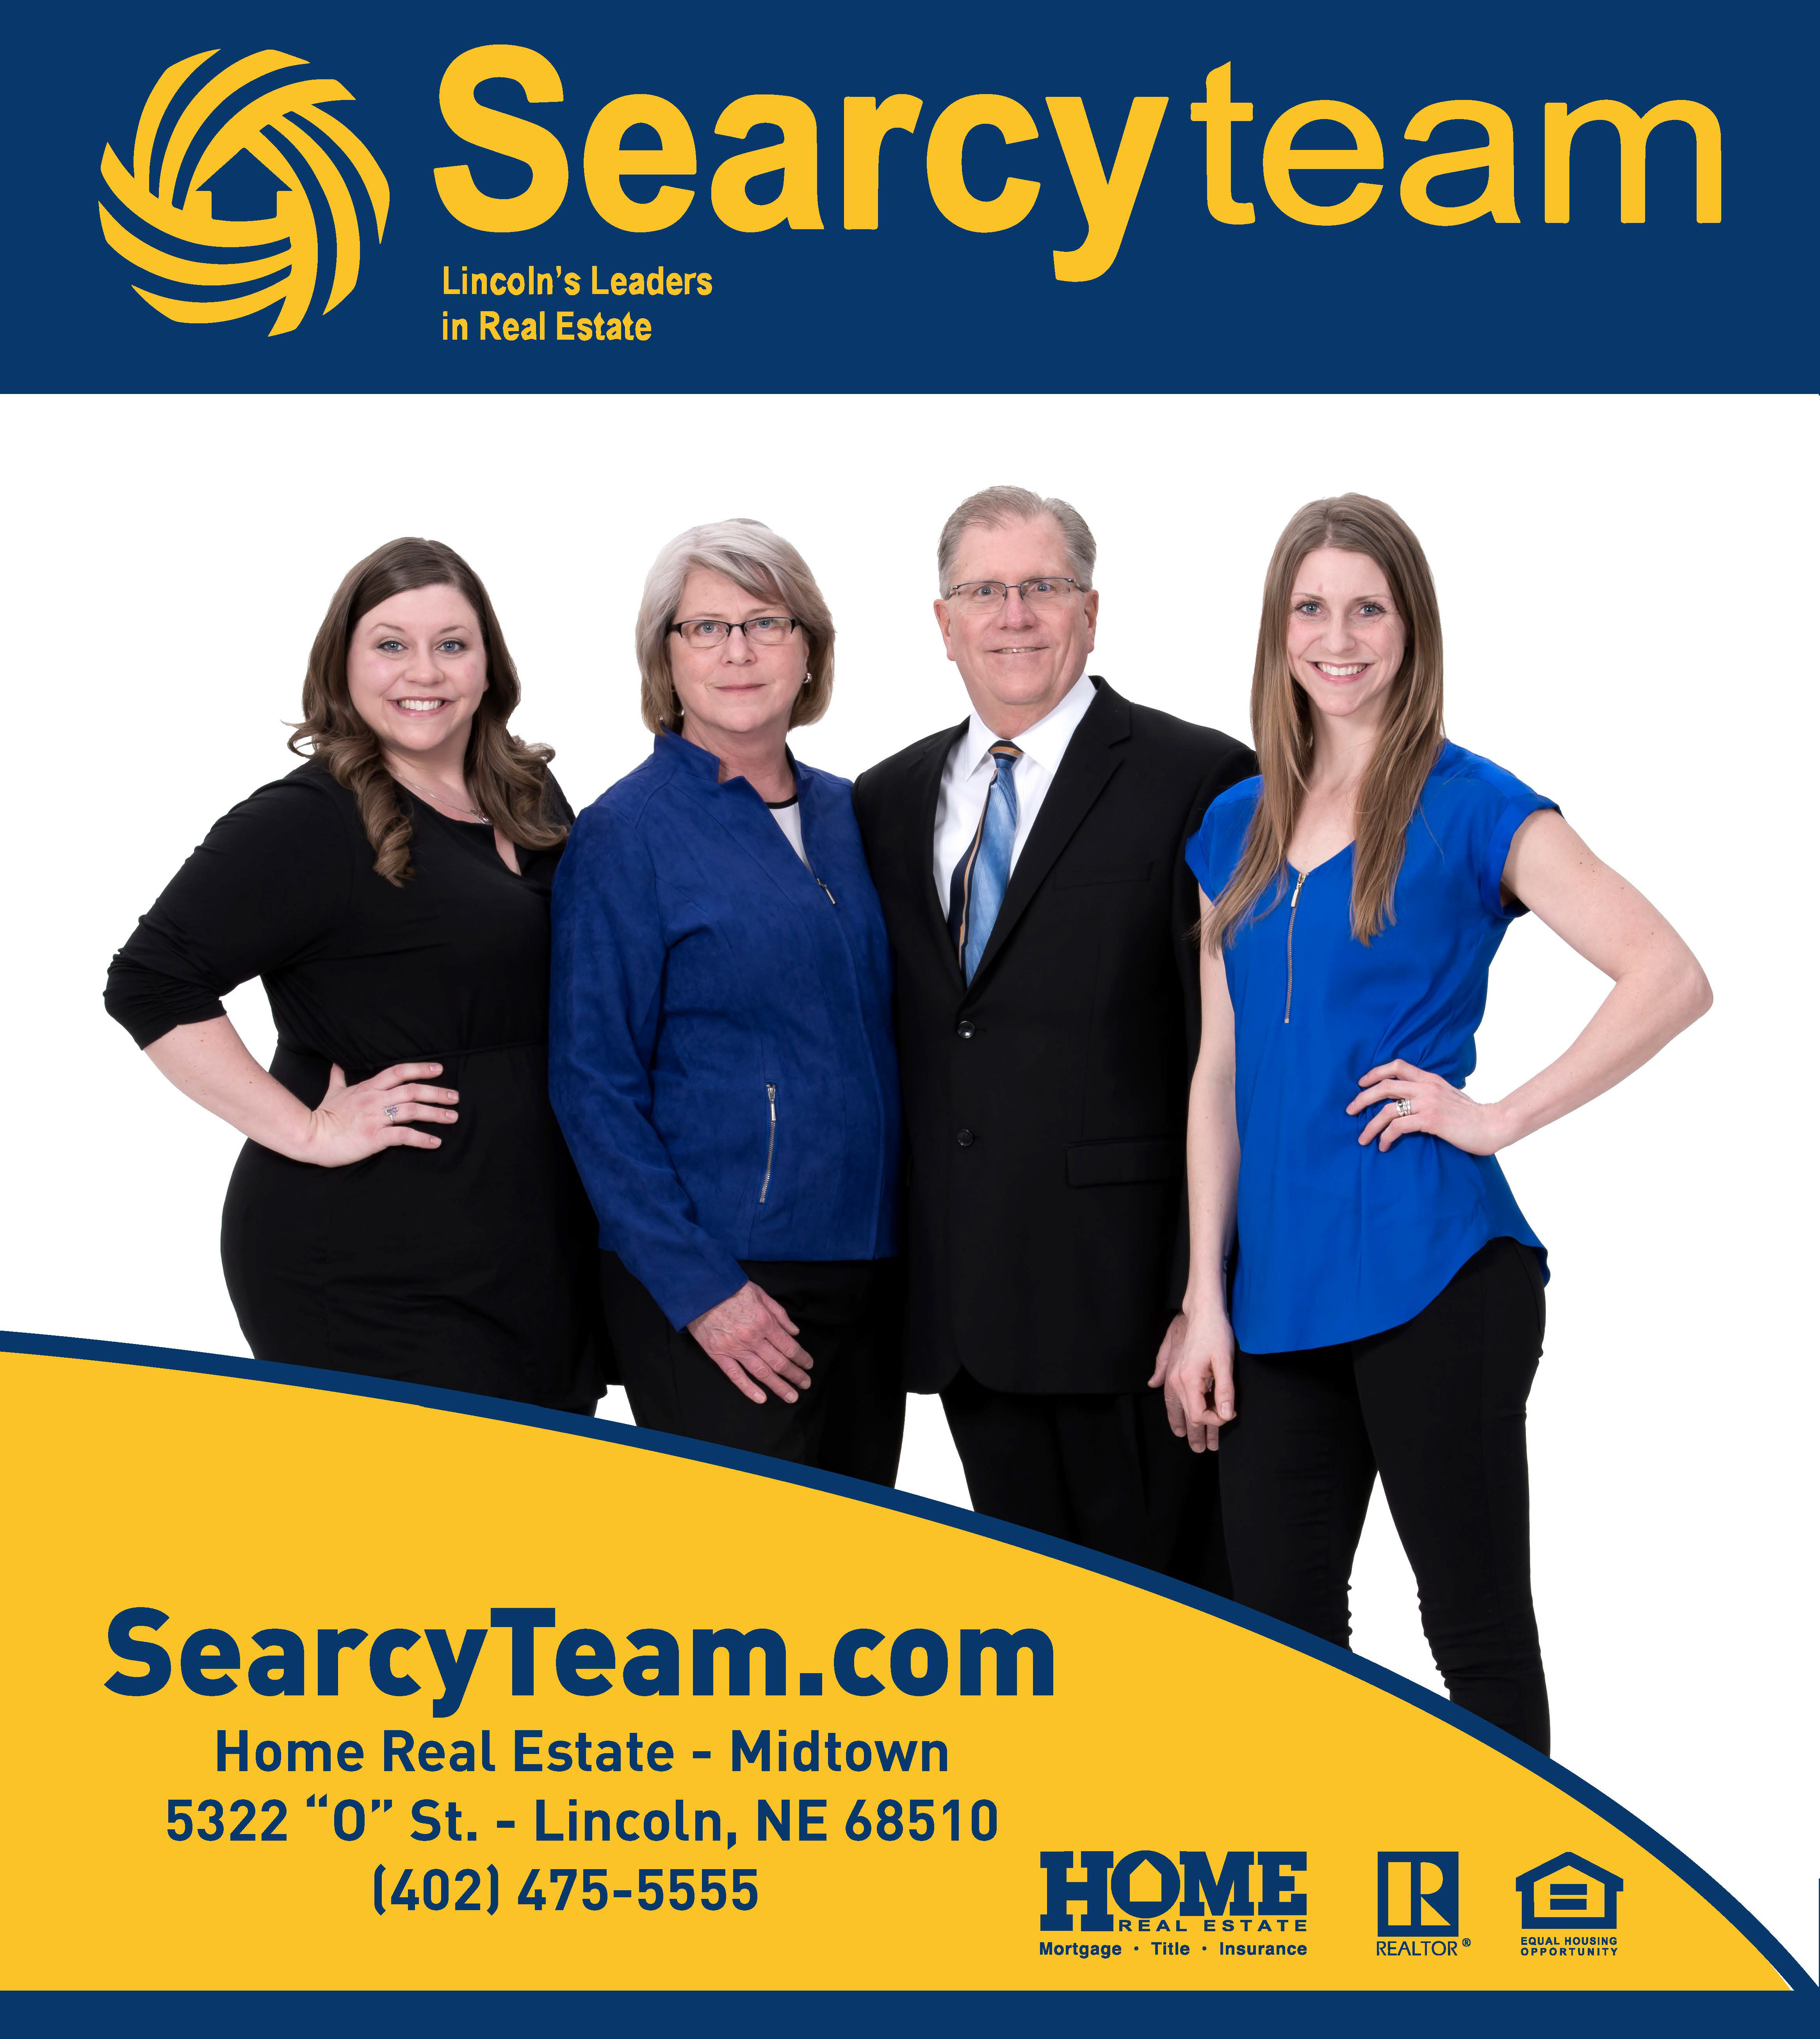 Searcy Team